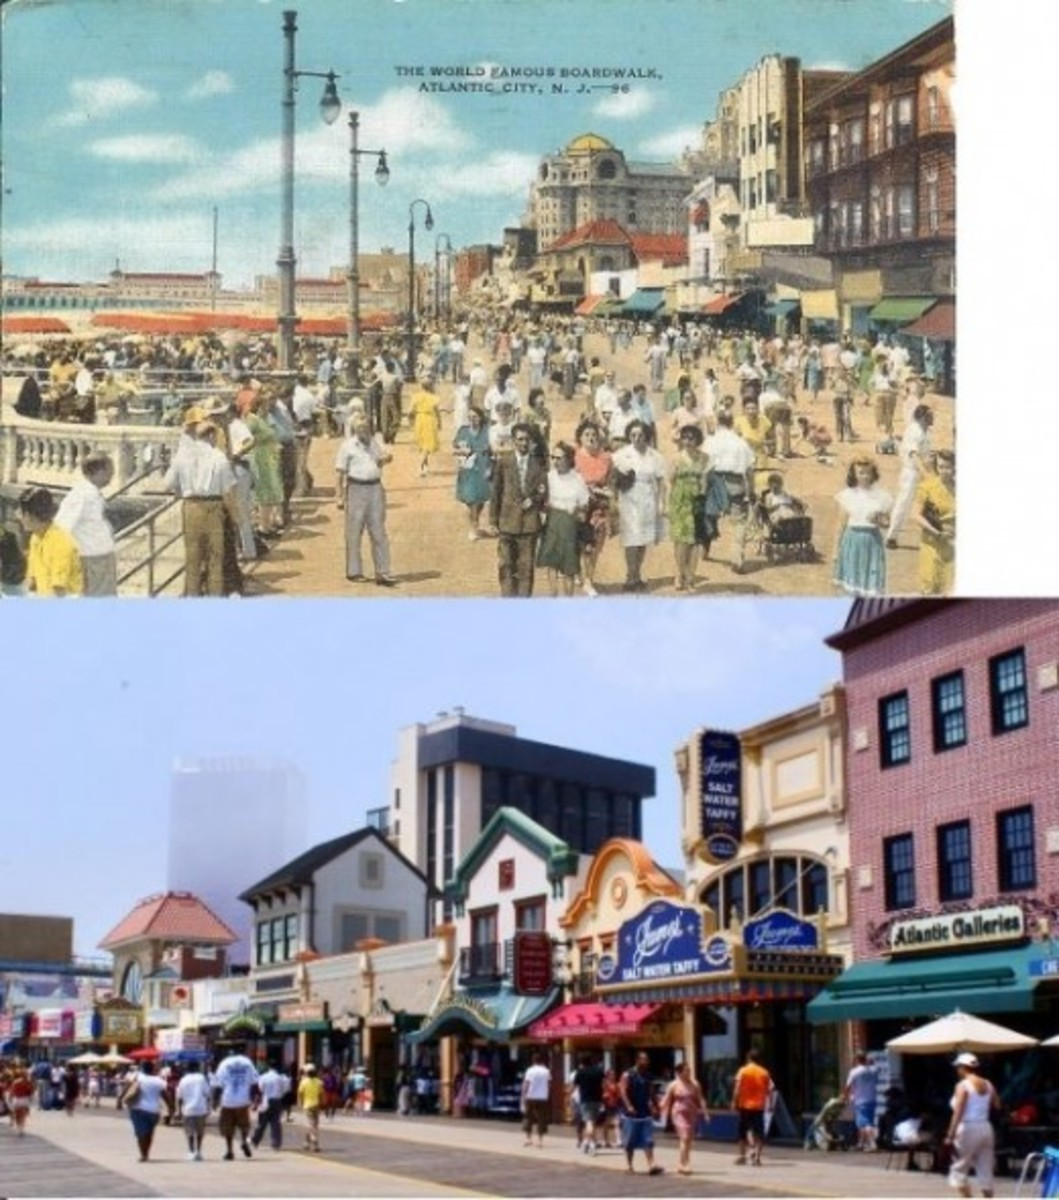 Atlantic-City-Boardwalk-1940-and-Now